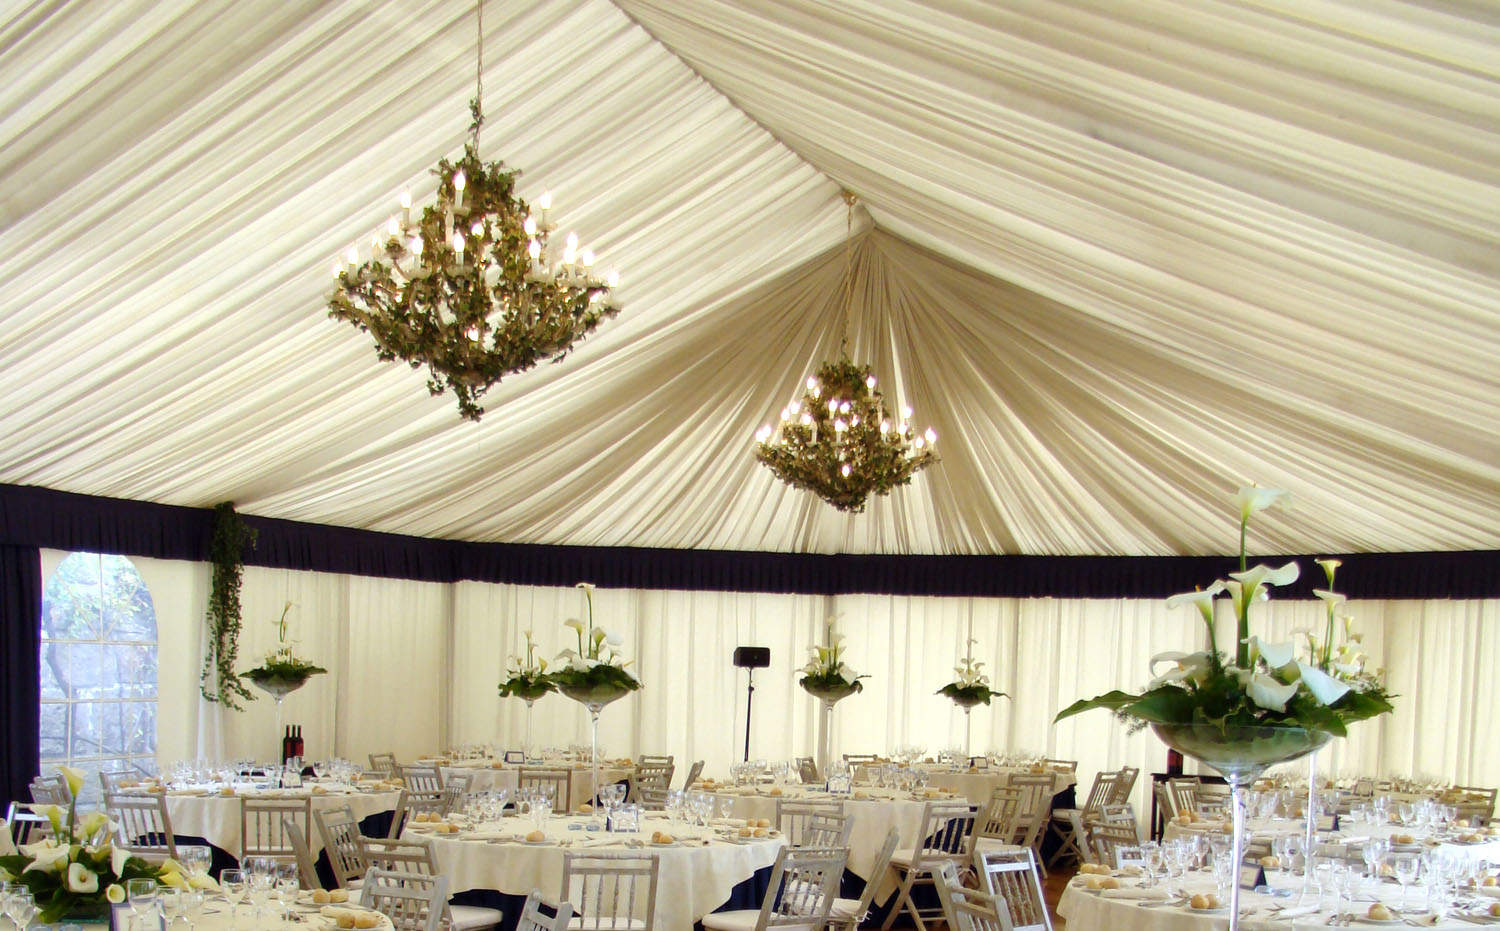 Specialty Tent Lighting & 6 Luxury Touches for Tented Weddings | Lakes Region Tent u0026 Event